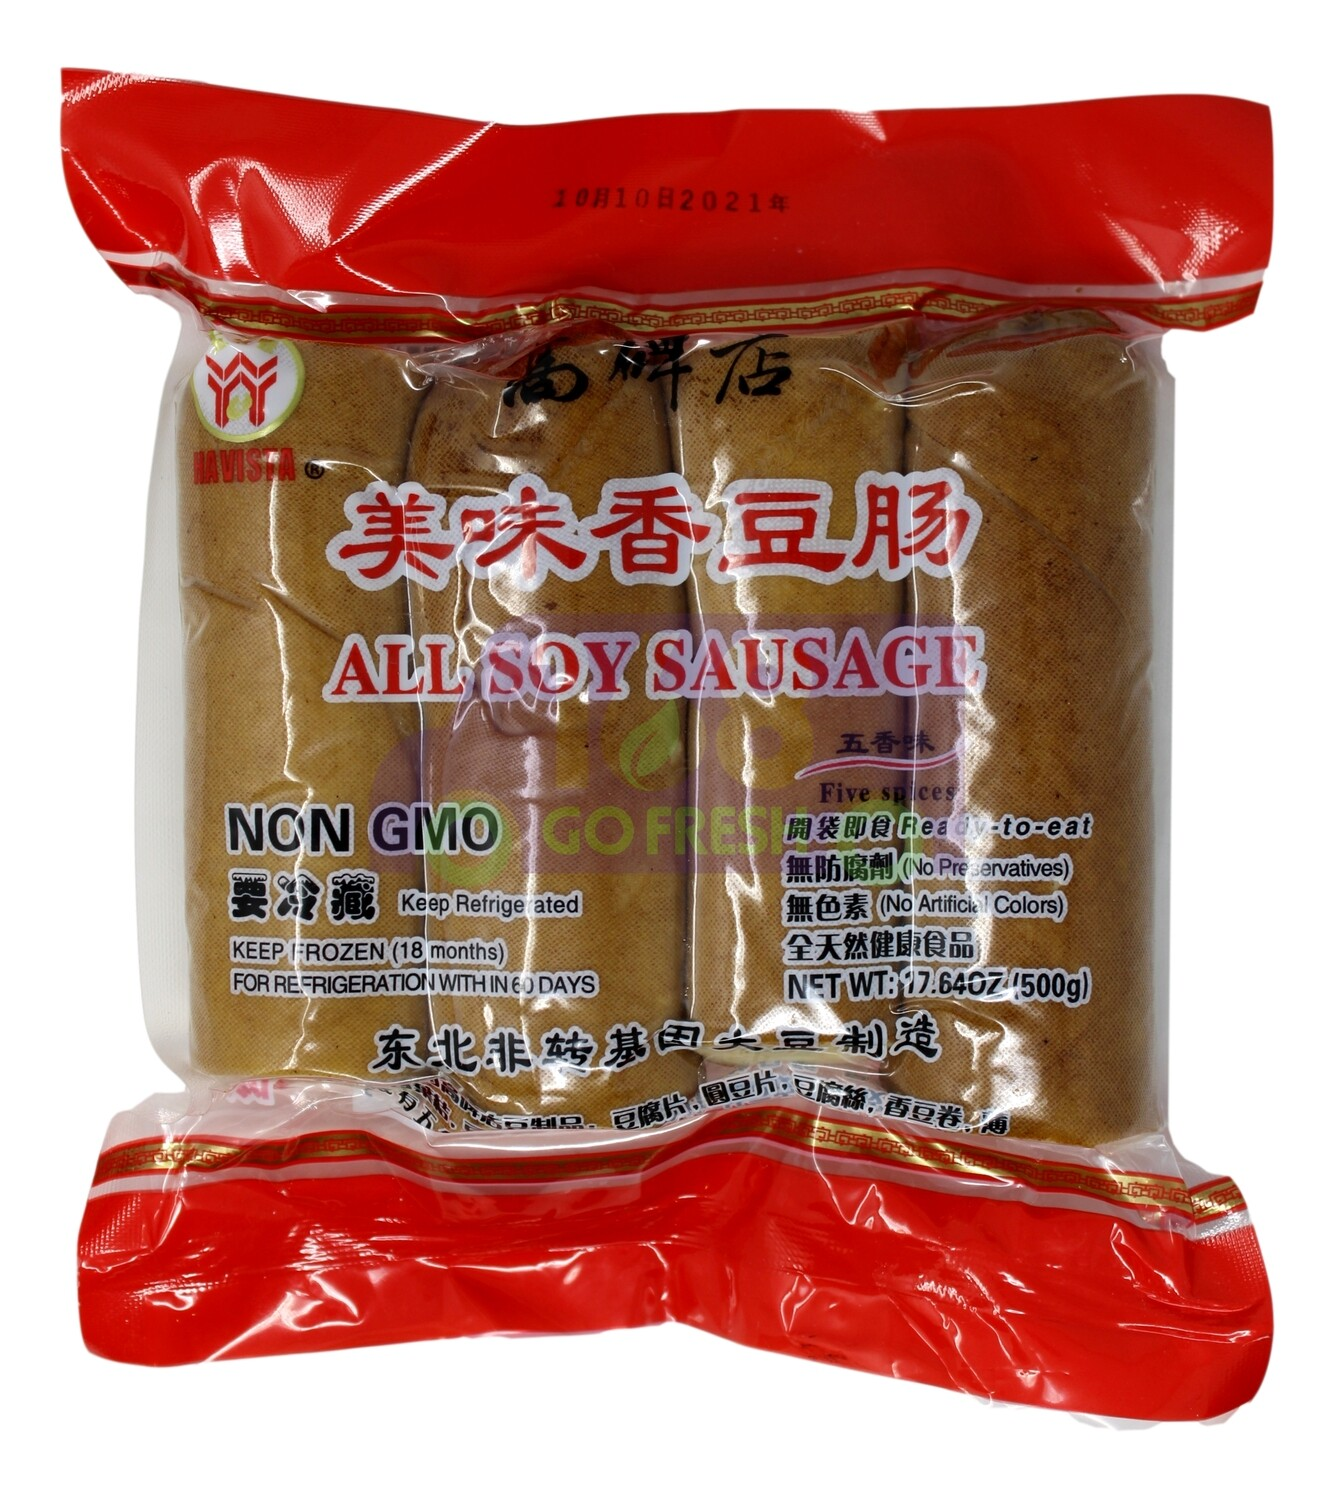 HAVISTA ALL SOY SAUSAGE FIVE SPICES FLA. 五谷丰 高碑店美味香豆肠 五香味(17.64OZ)